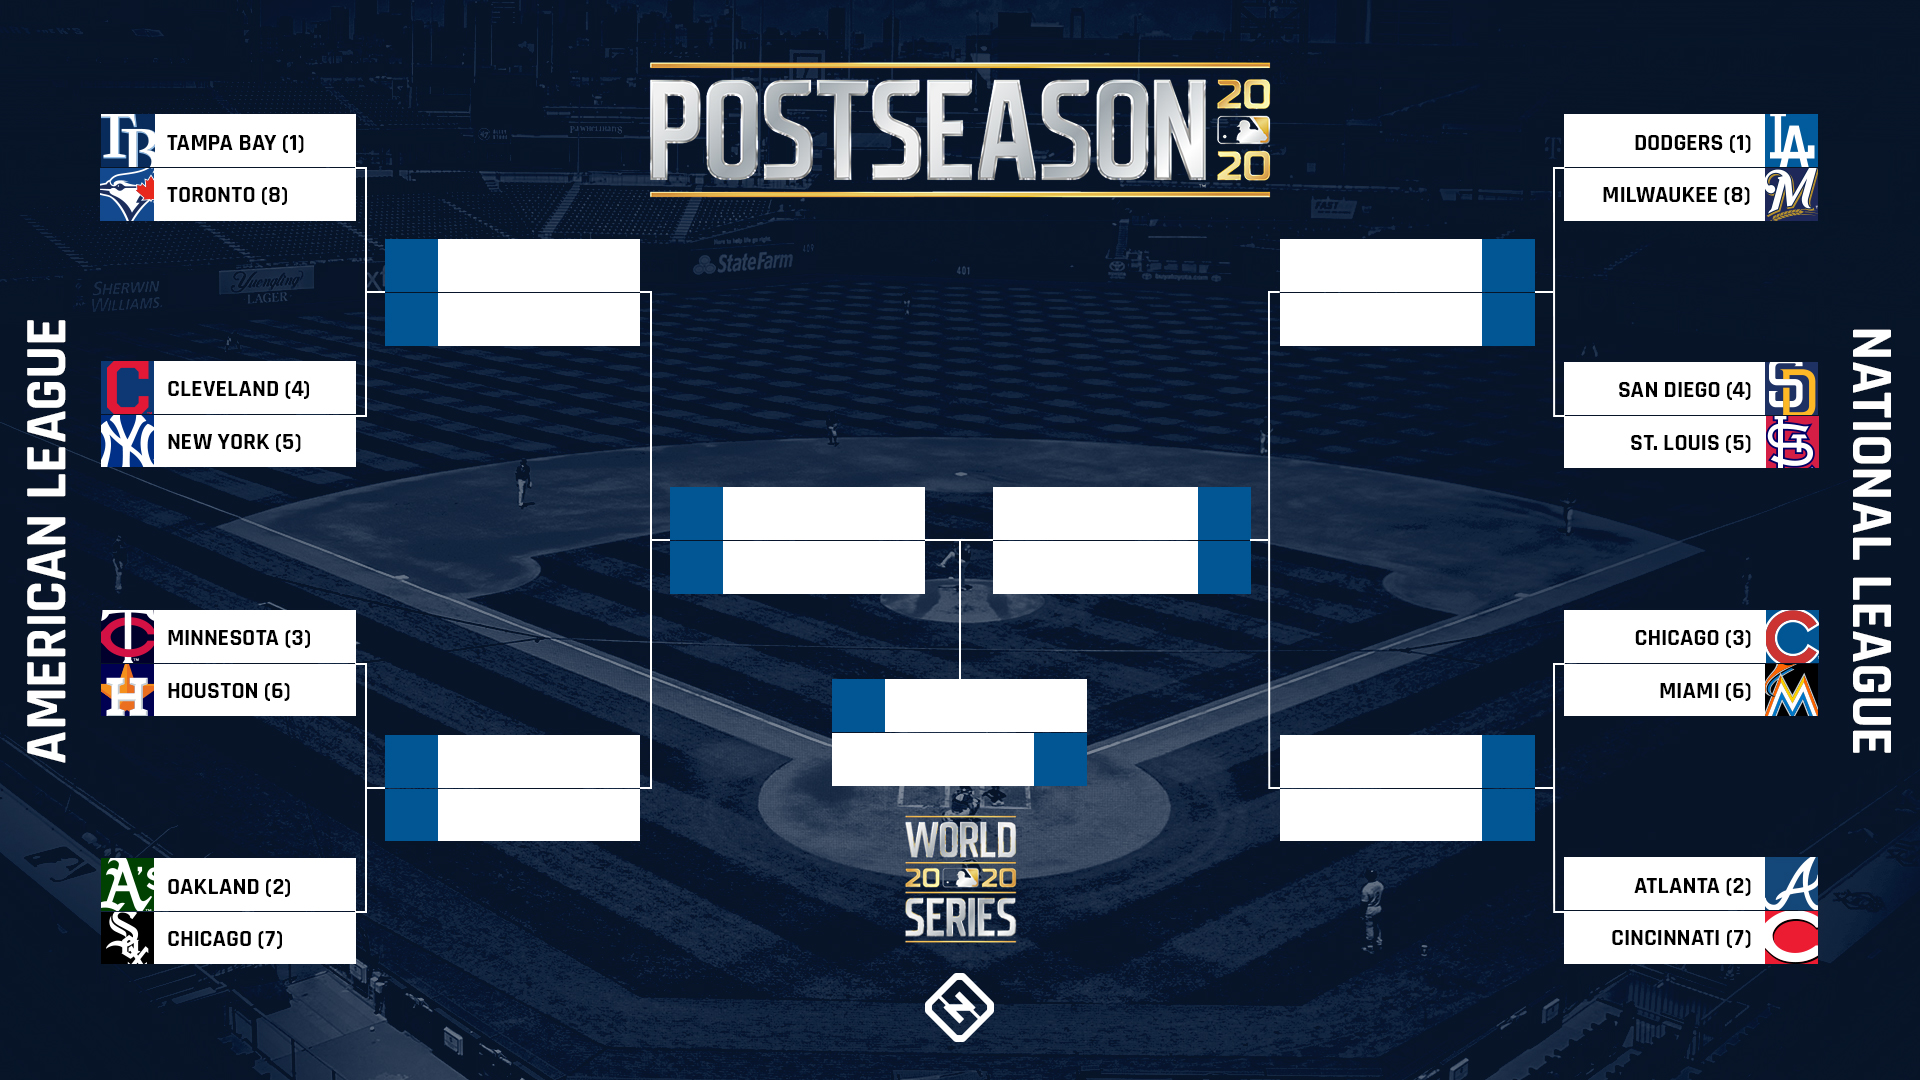 MLB playoff schedule 2020: Full bracket, dates, times, TV channels for every series 1